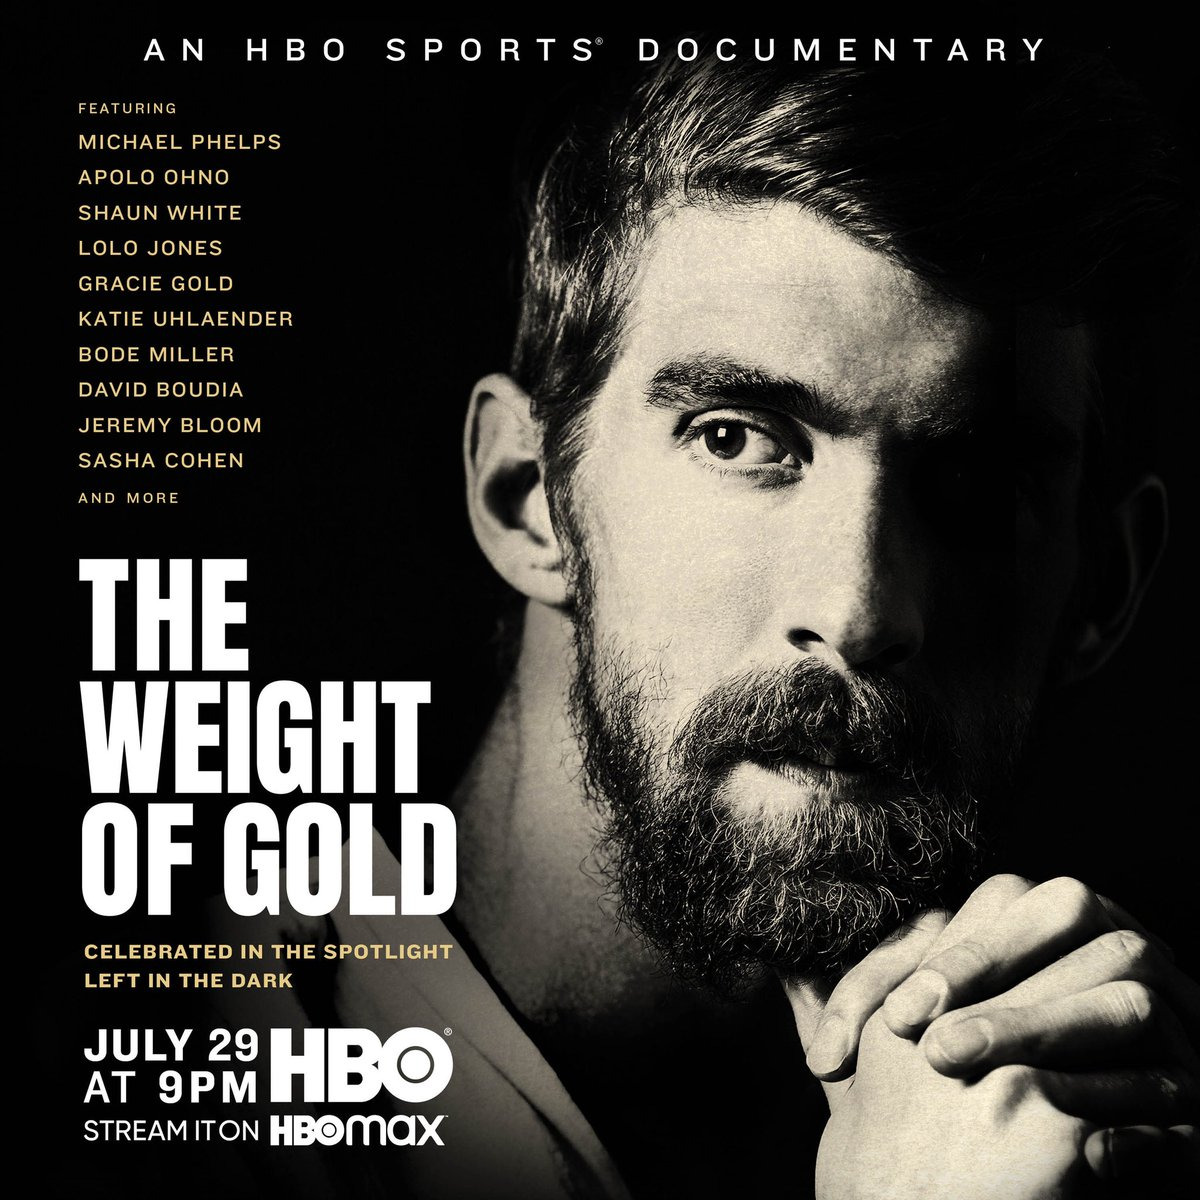 Celebrated in the spotlight, left in the dark. #TheWeightofGold premieres July 29 on @HBO